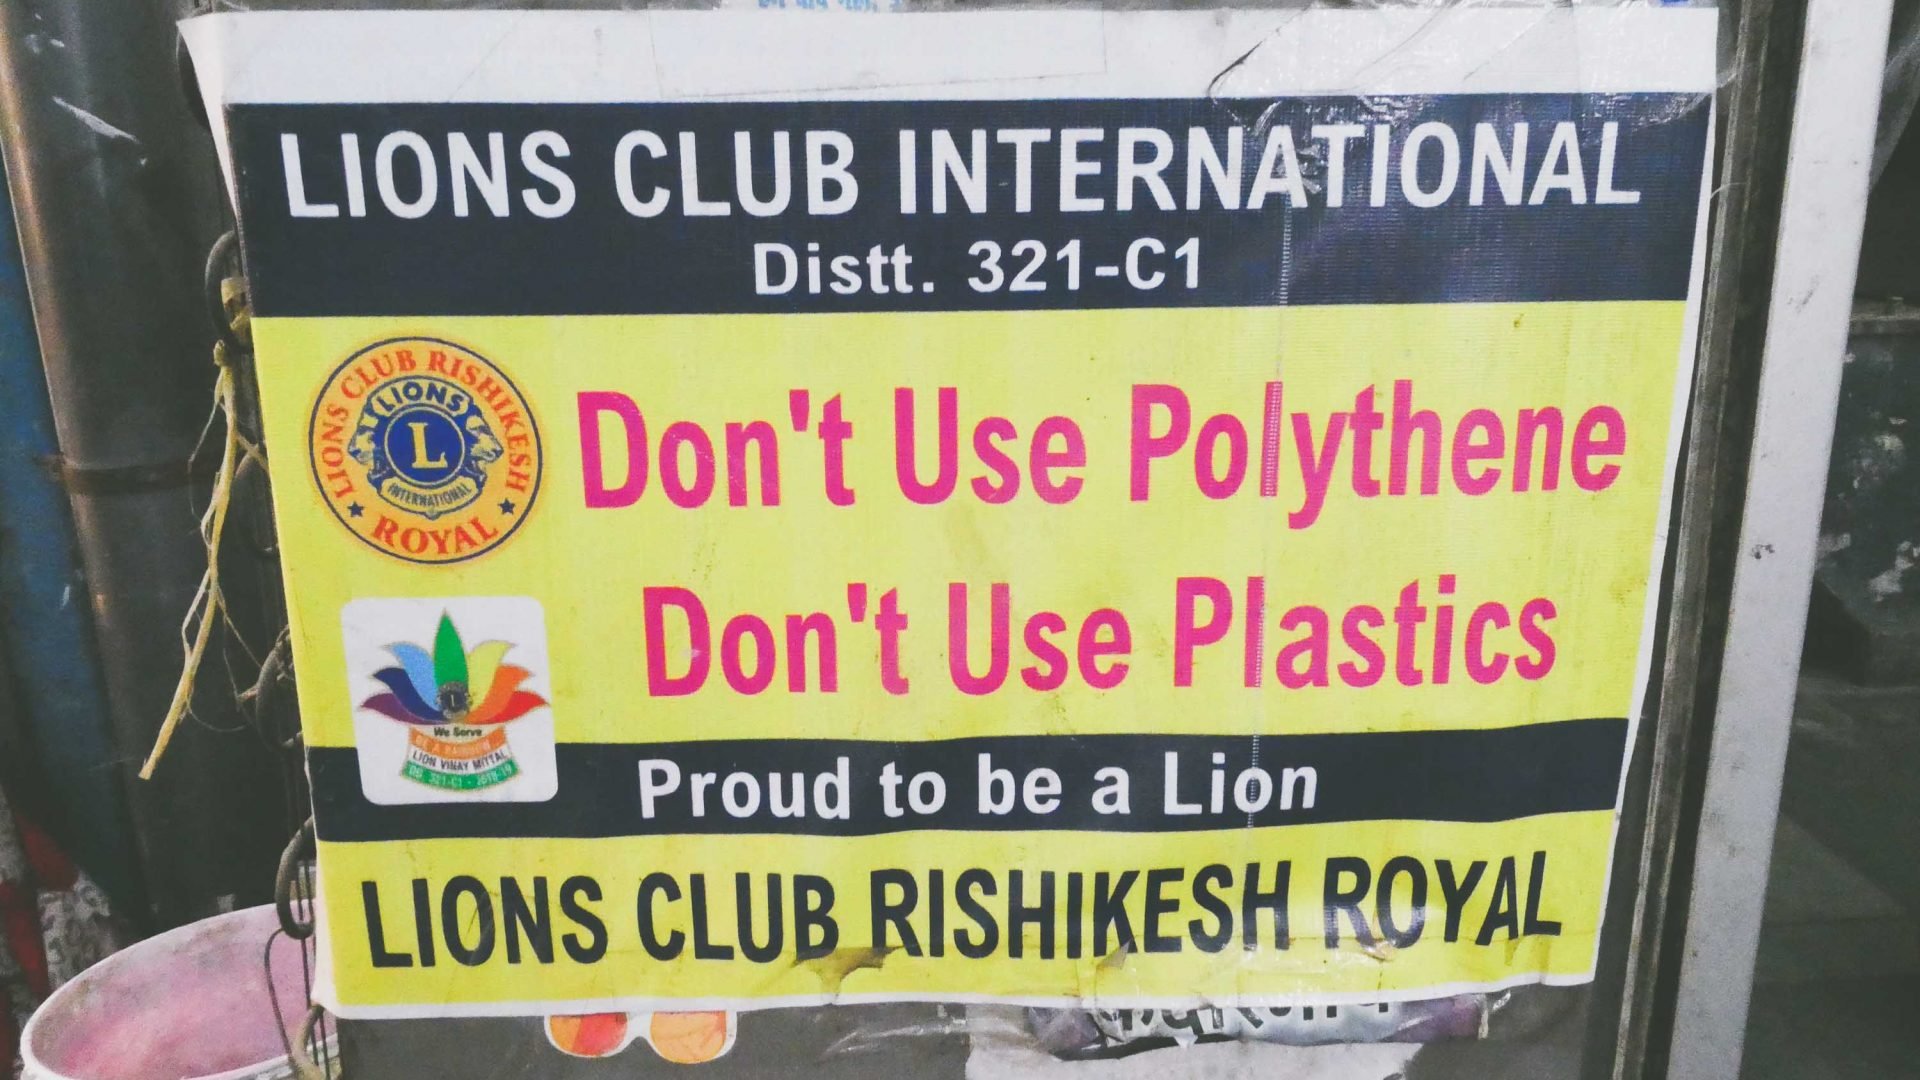 A Lions Club in Rishikesh India discourages the use of plastic.